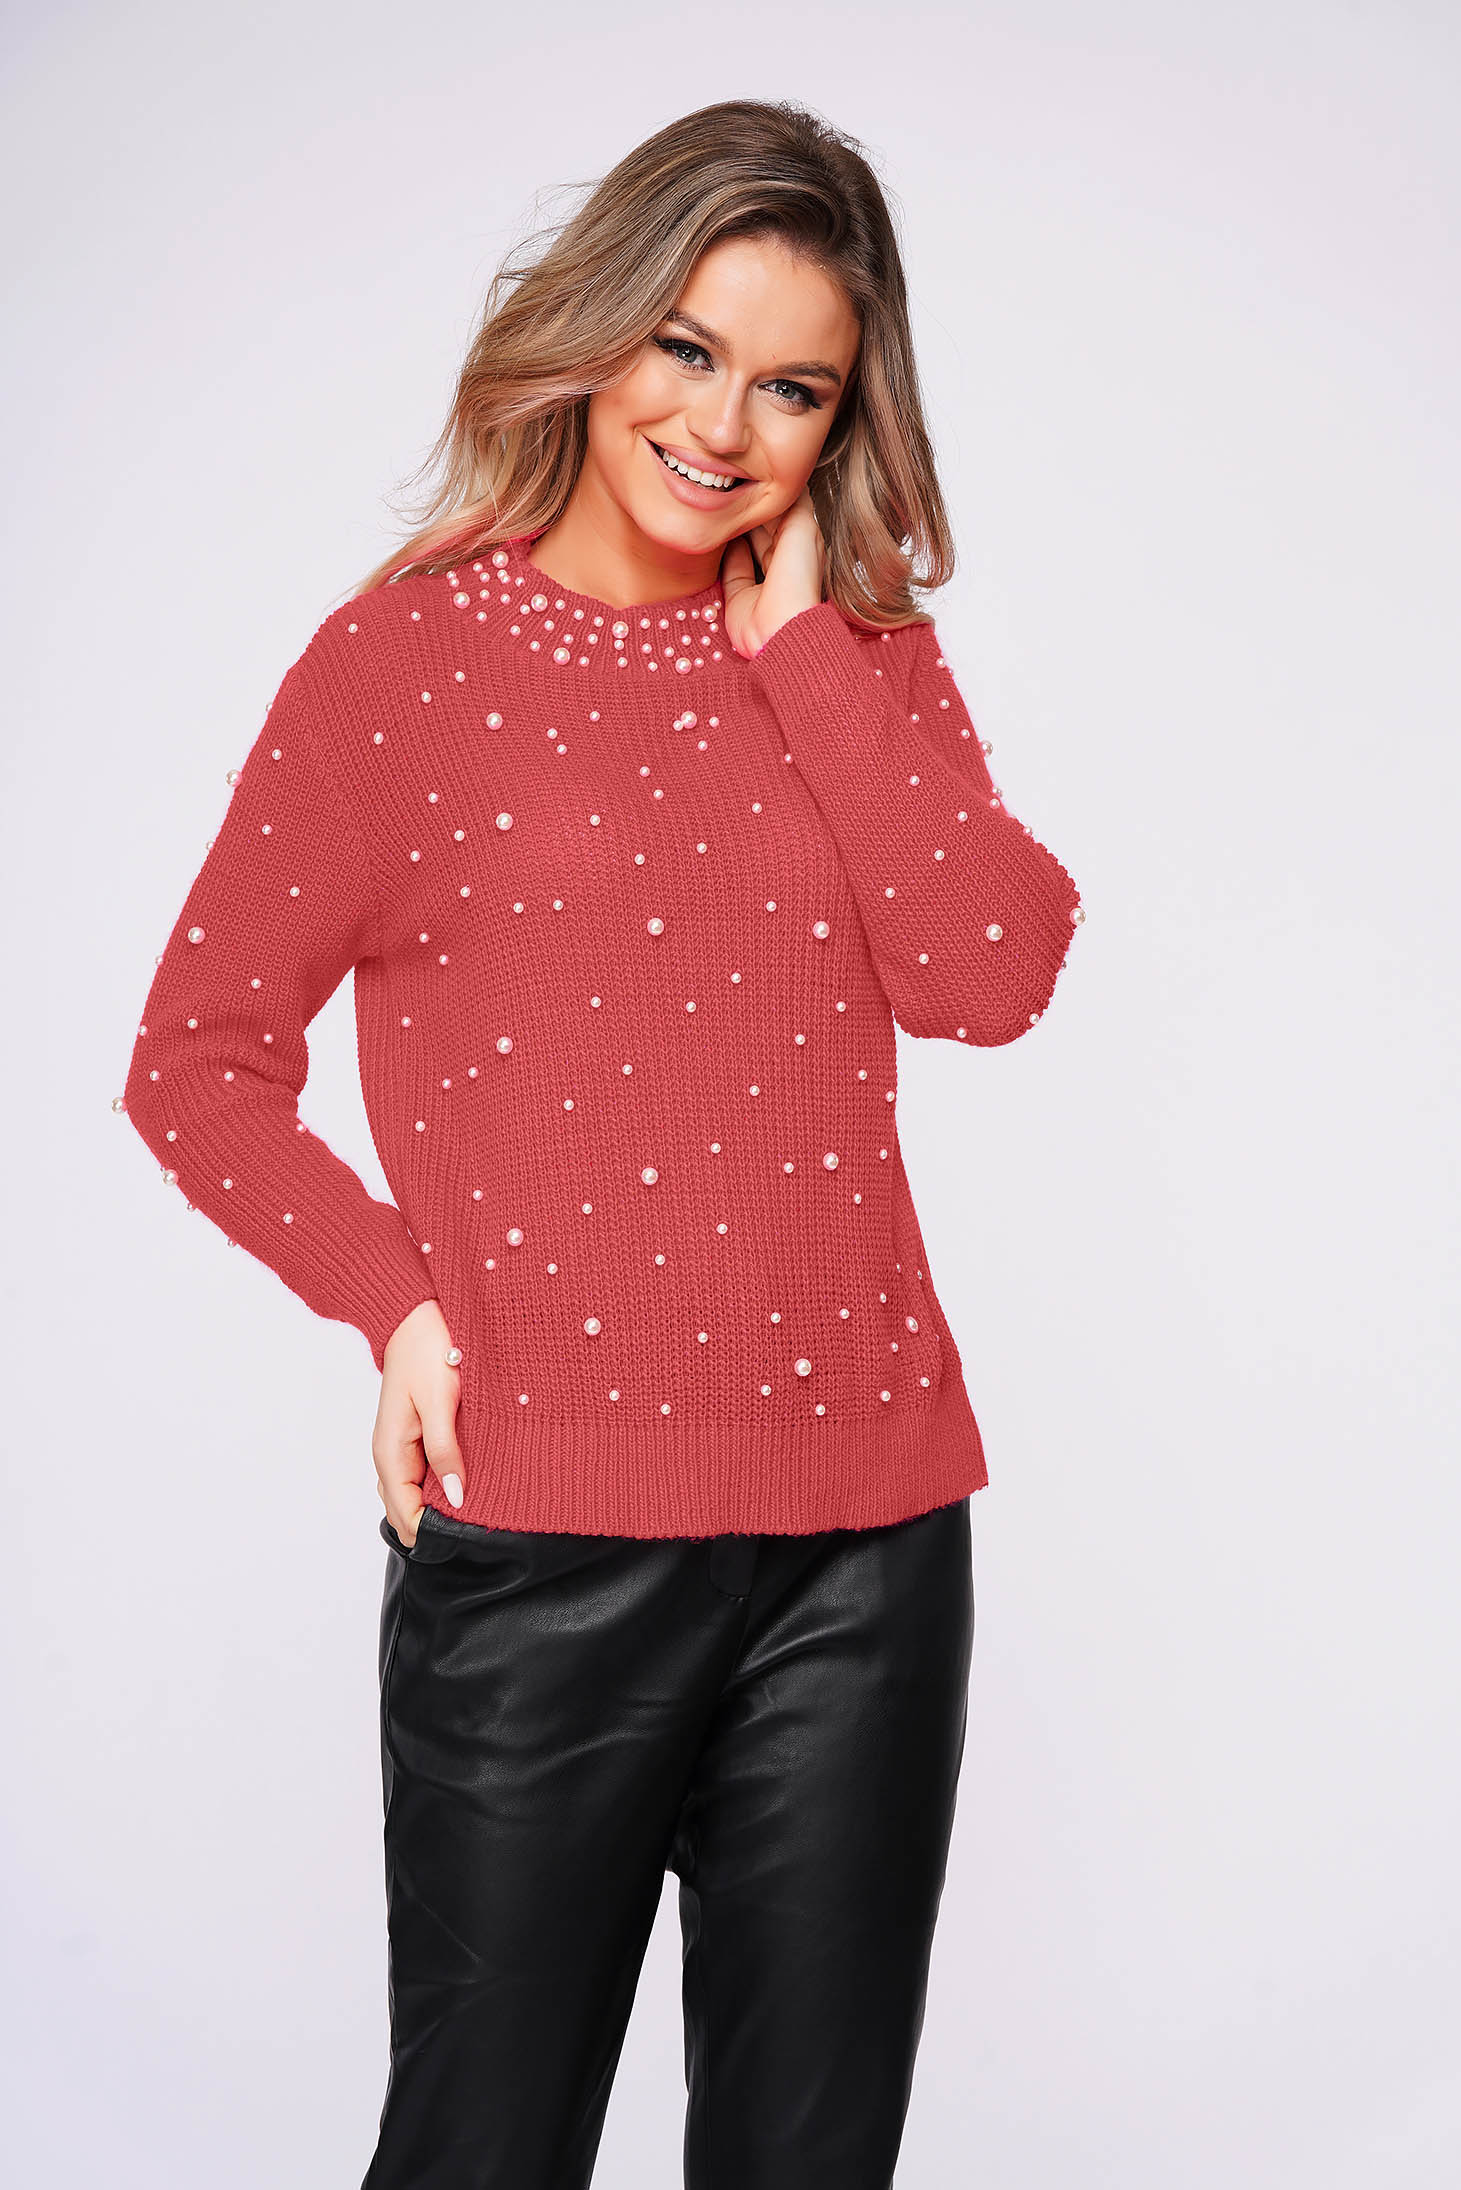 Coral sweater casual flared knitted fabric with pearls